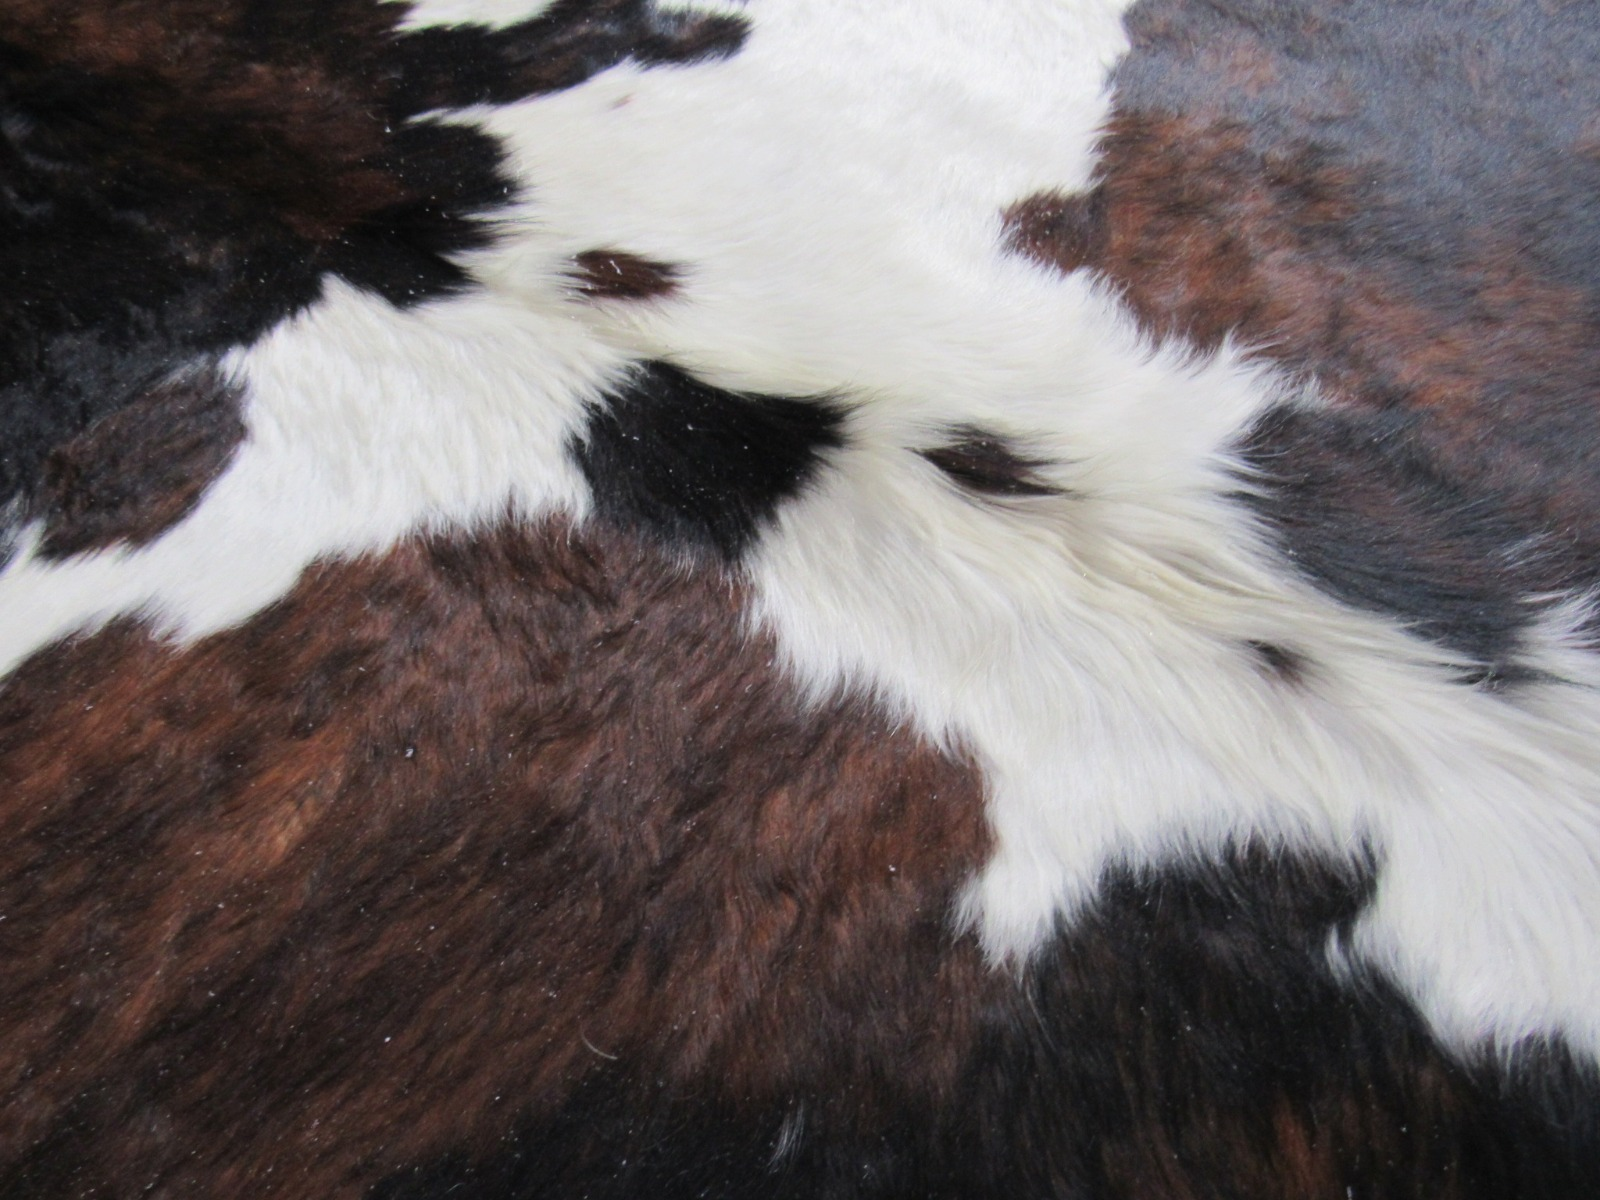 A-1303 Tricolor Speckled Cowhide Rug Size: 7 1/4' X 6 1/2'